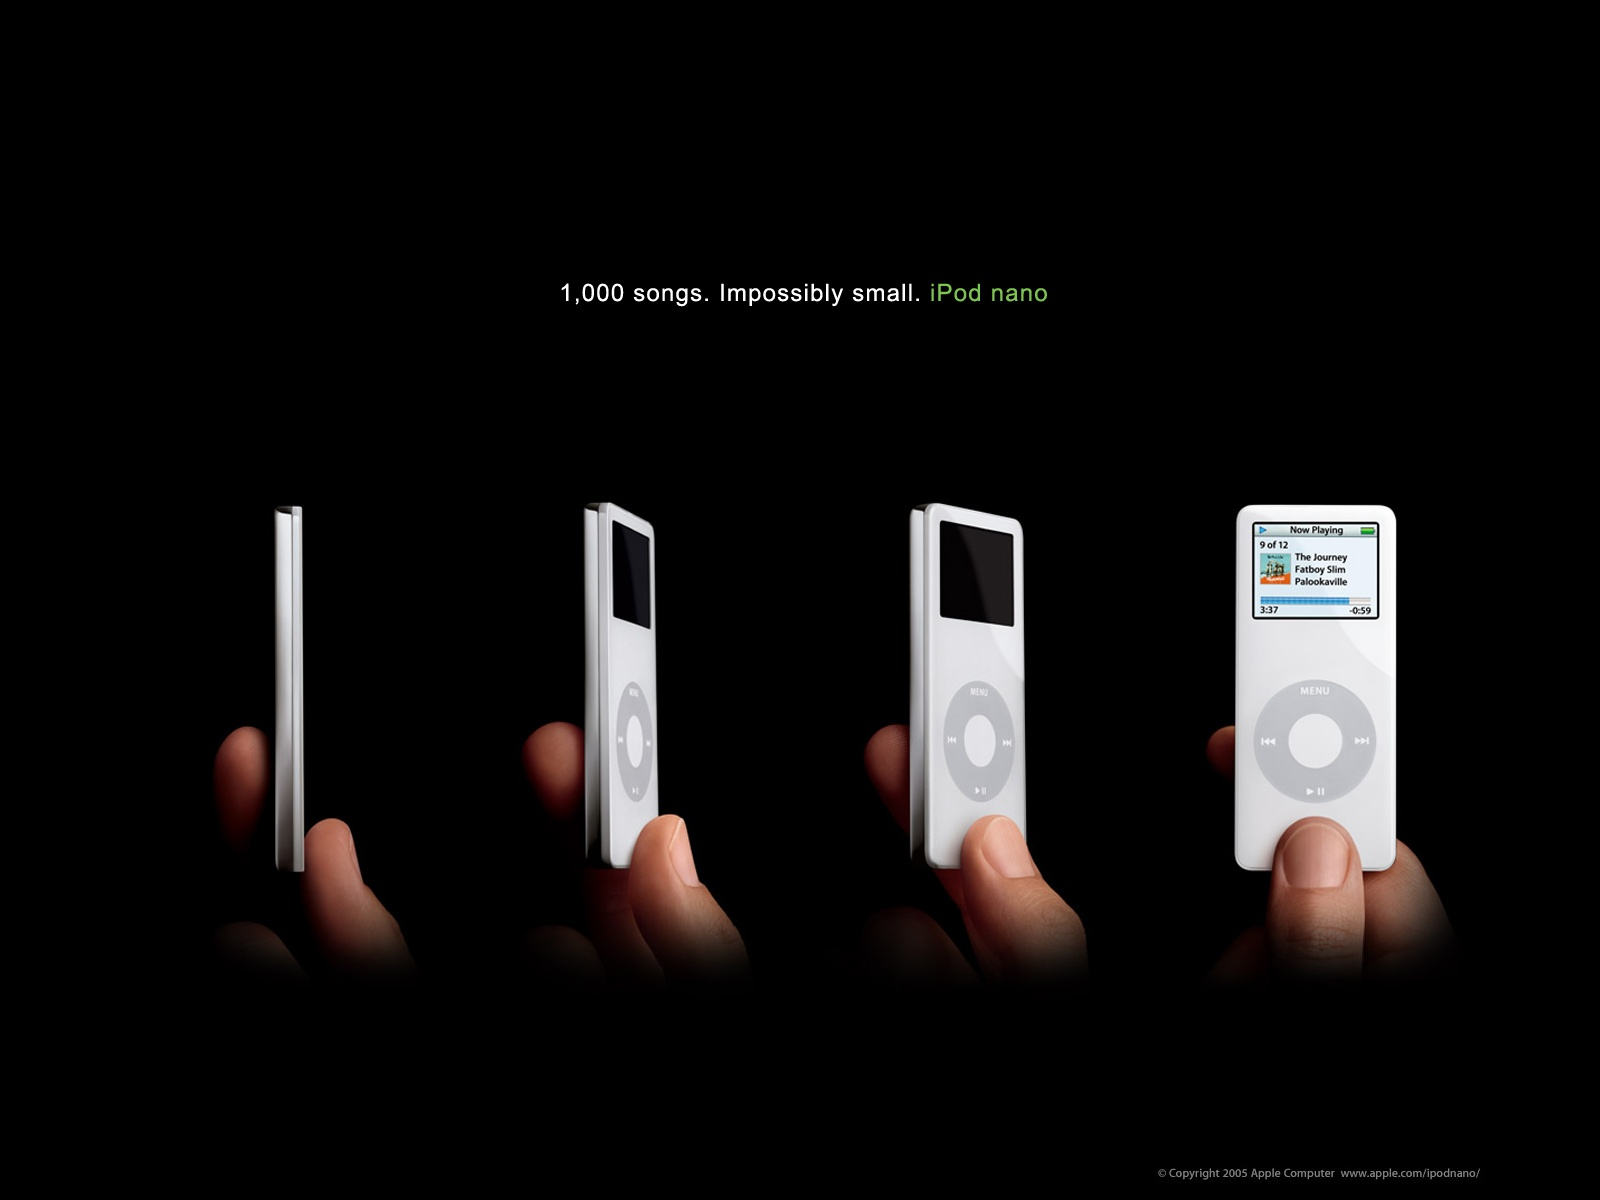 Apple Logo Wallpaper For Iphone 3d White Ipods Nano Wallpapers White Ipods Nano Stock Photos